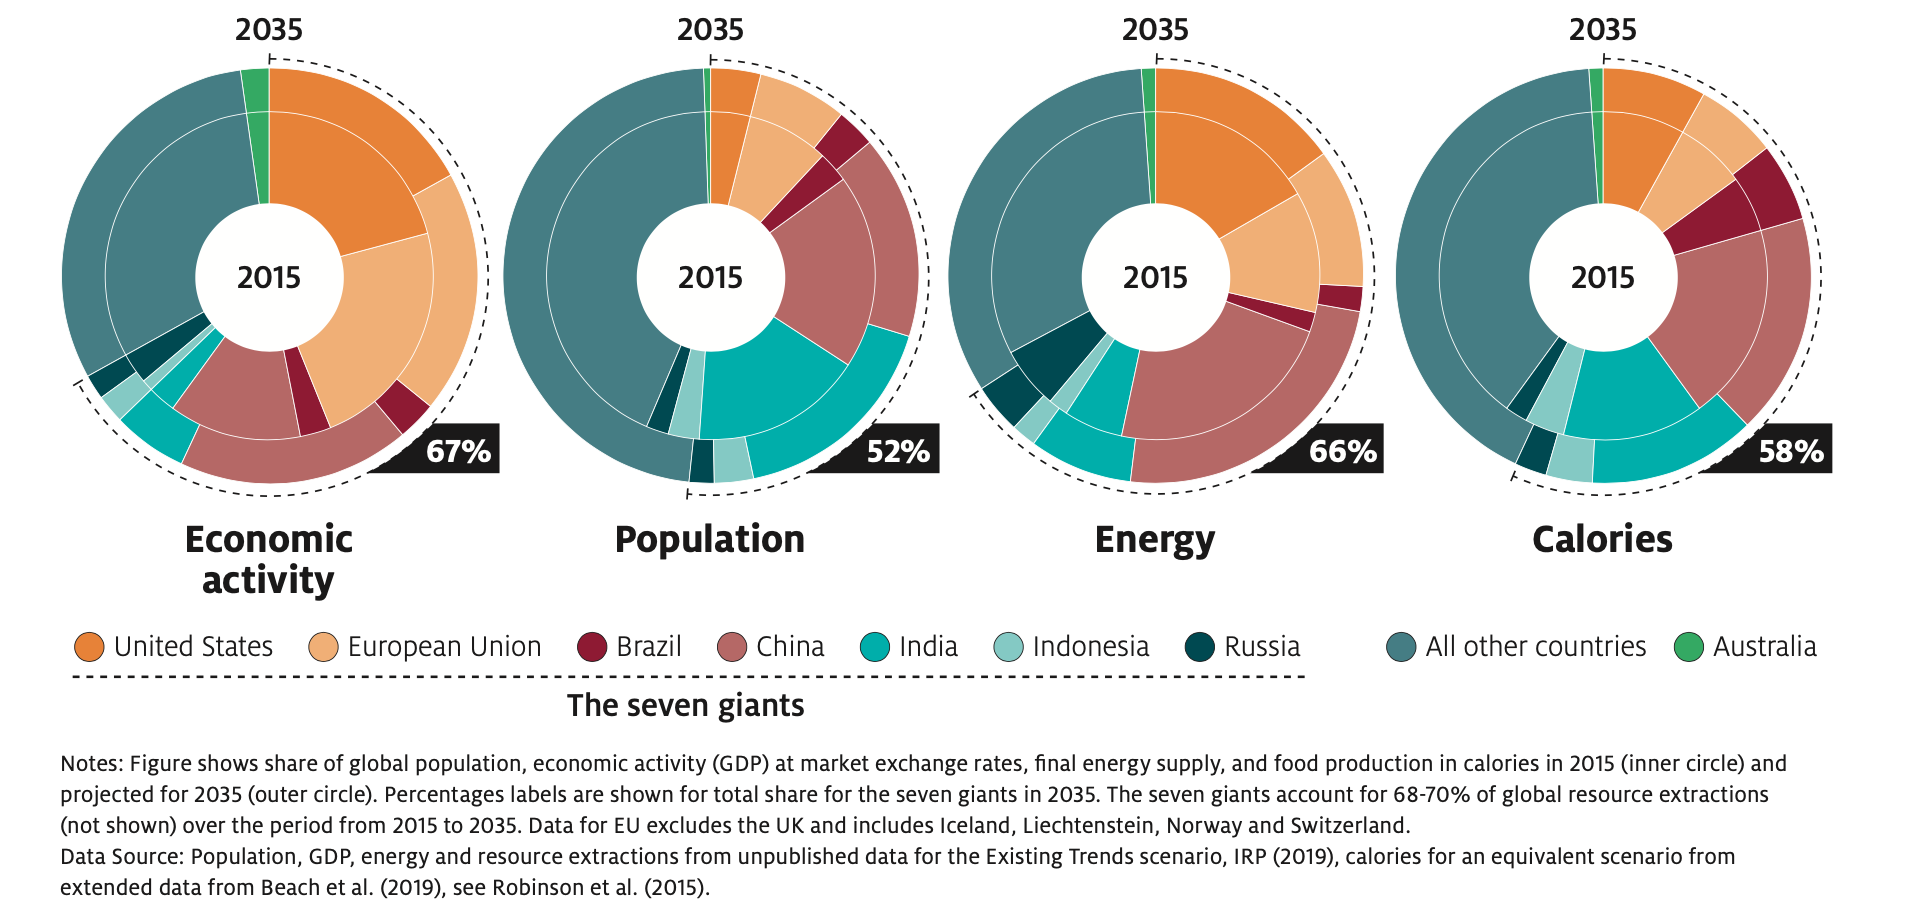 the seven giants food production, energy, economic activity and extractions